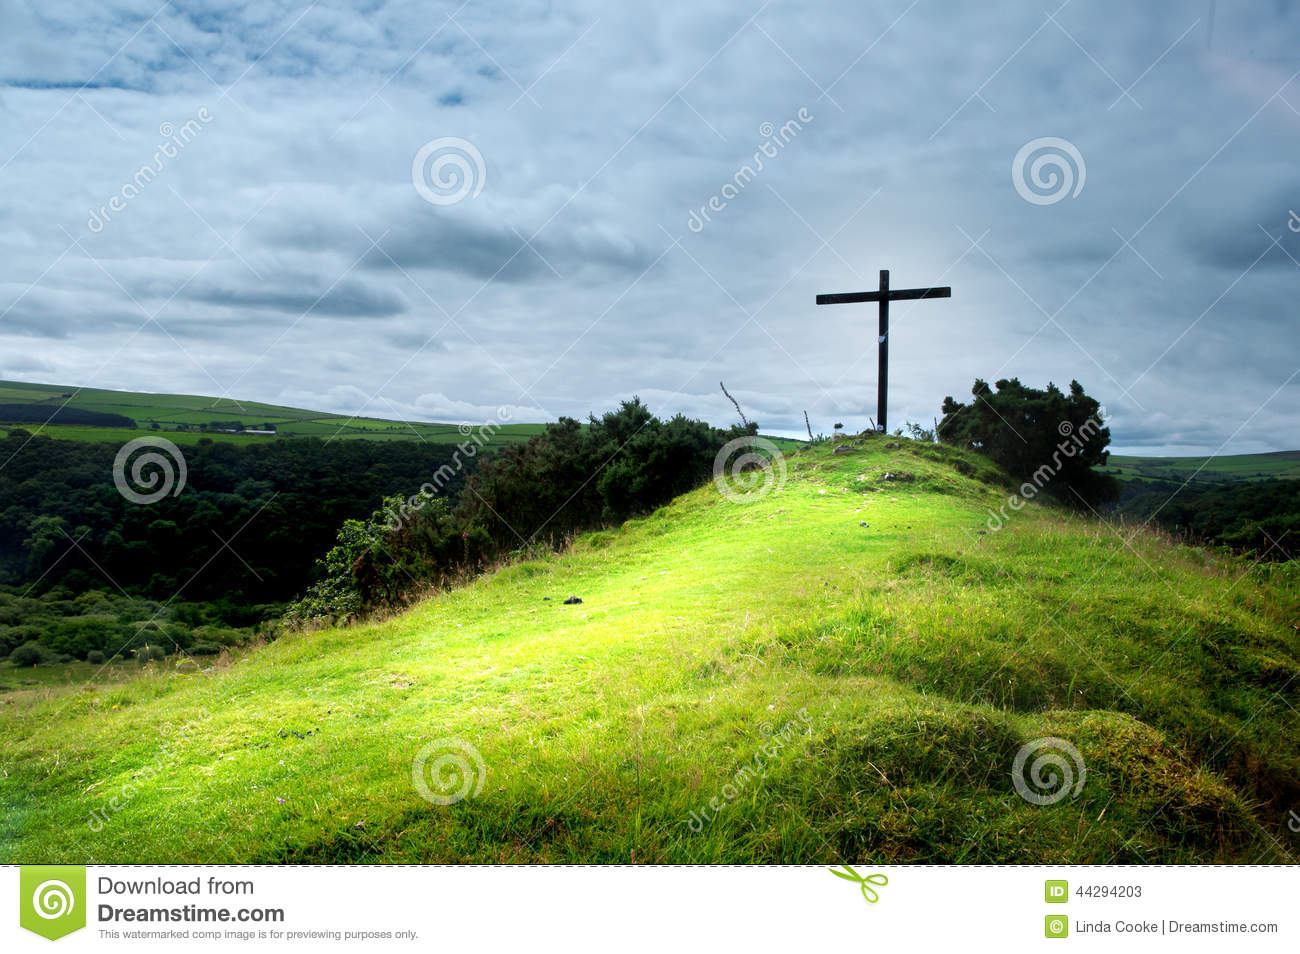 cross hill christian singles Christian singles events, activities, groups in west virginia (wv) for fellowship, bible study, socializing also christian singles conferences, retreats, cruises, vacations.